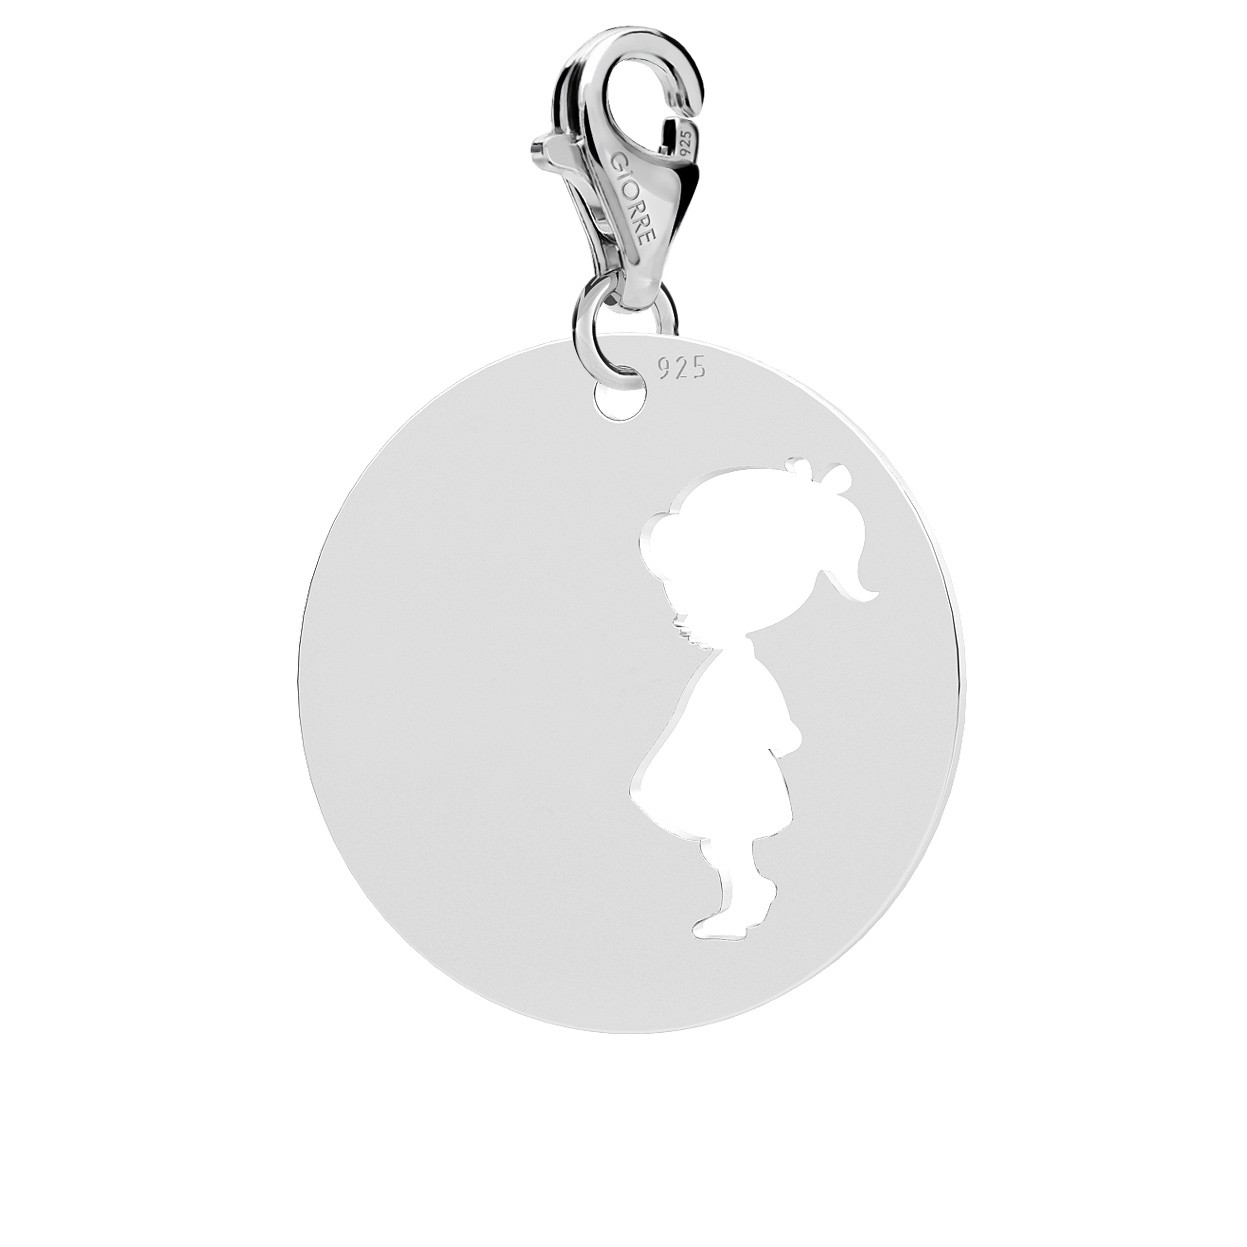 GIRL CHARMS WITH ENGRAVING, STERLING SILVER 925